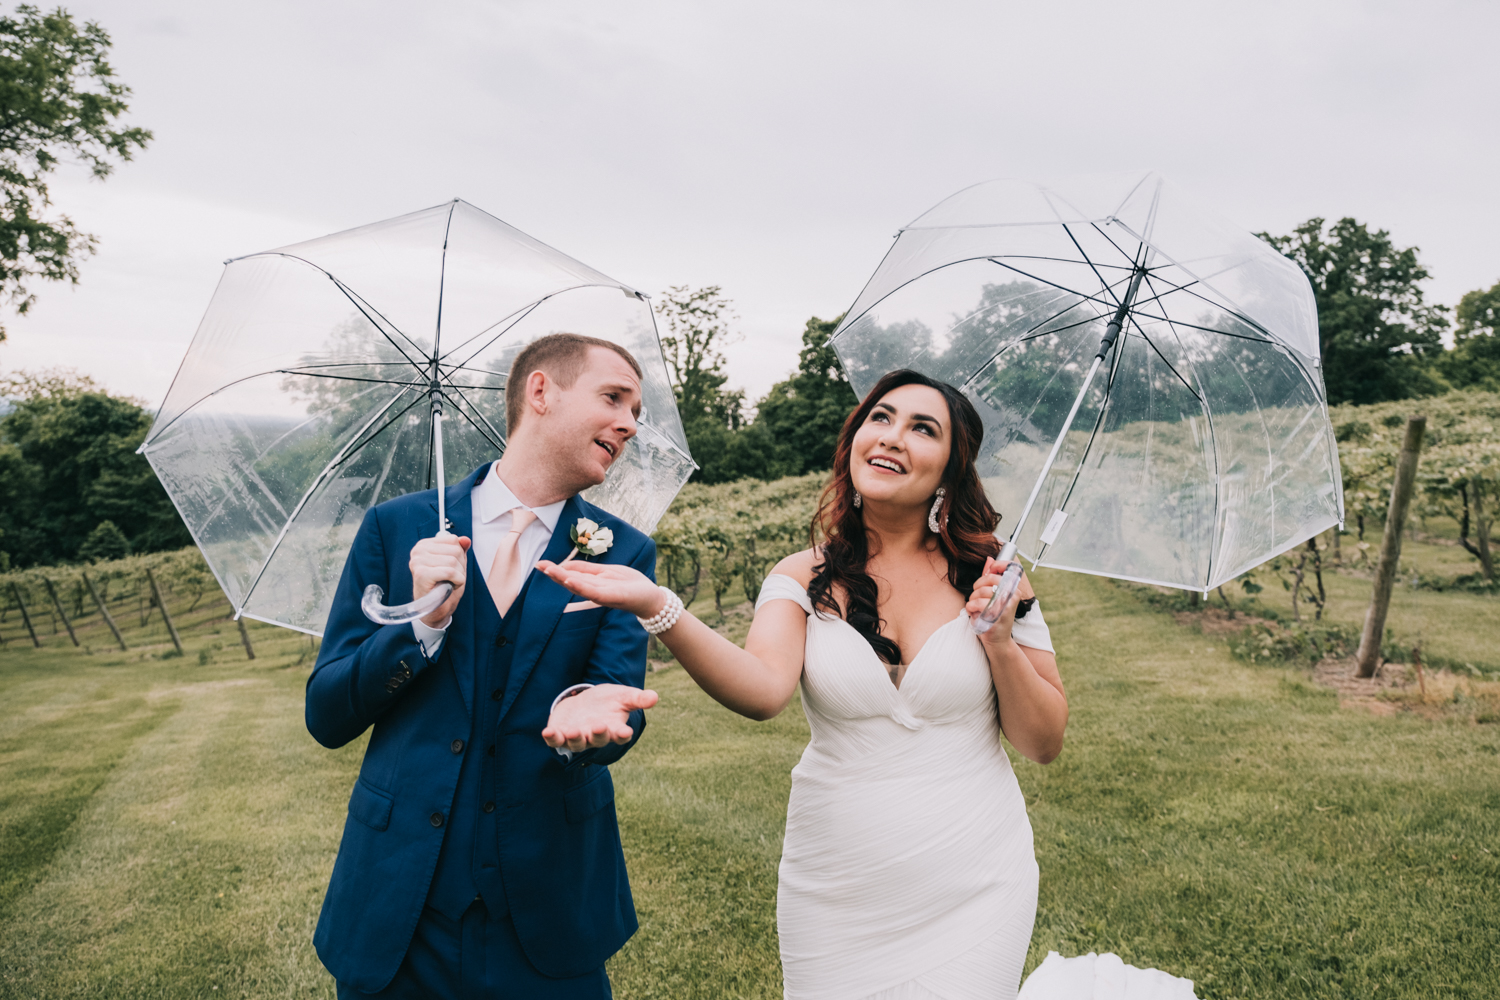 bluemont vineyard wedding rainy day umbrellas not a care in the world